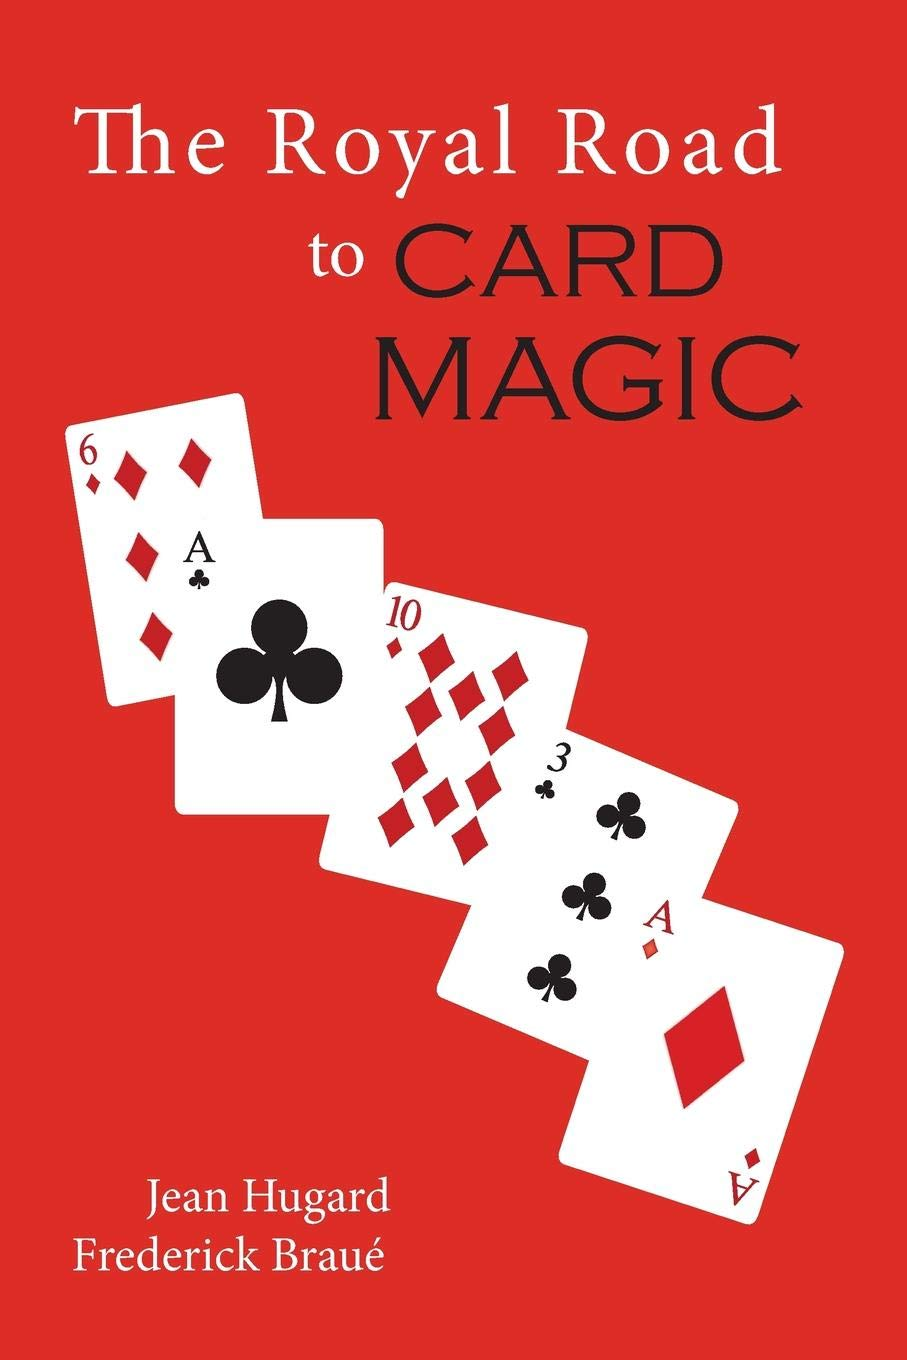 The Royal Road to Card Magic: Jean Hugard, Frederick Braue: 9781614278603:  Books - Amazon.ca